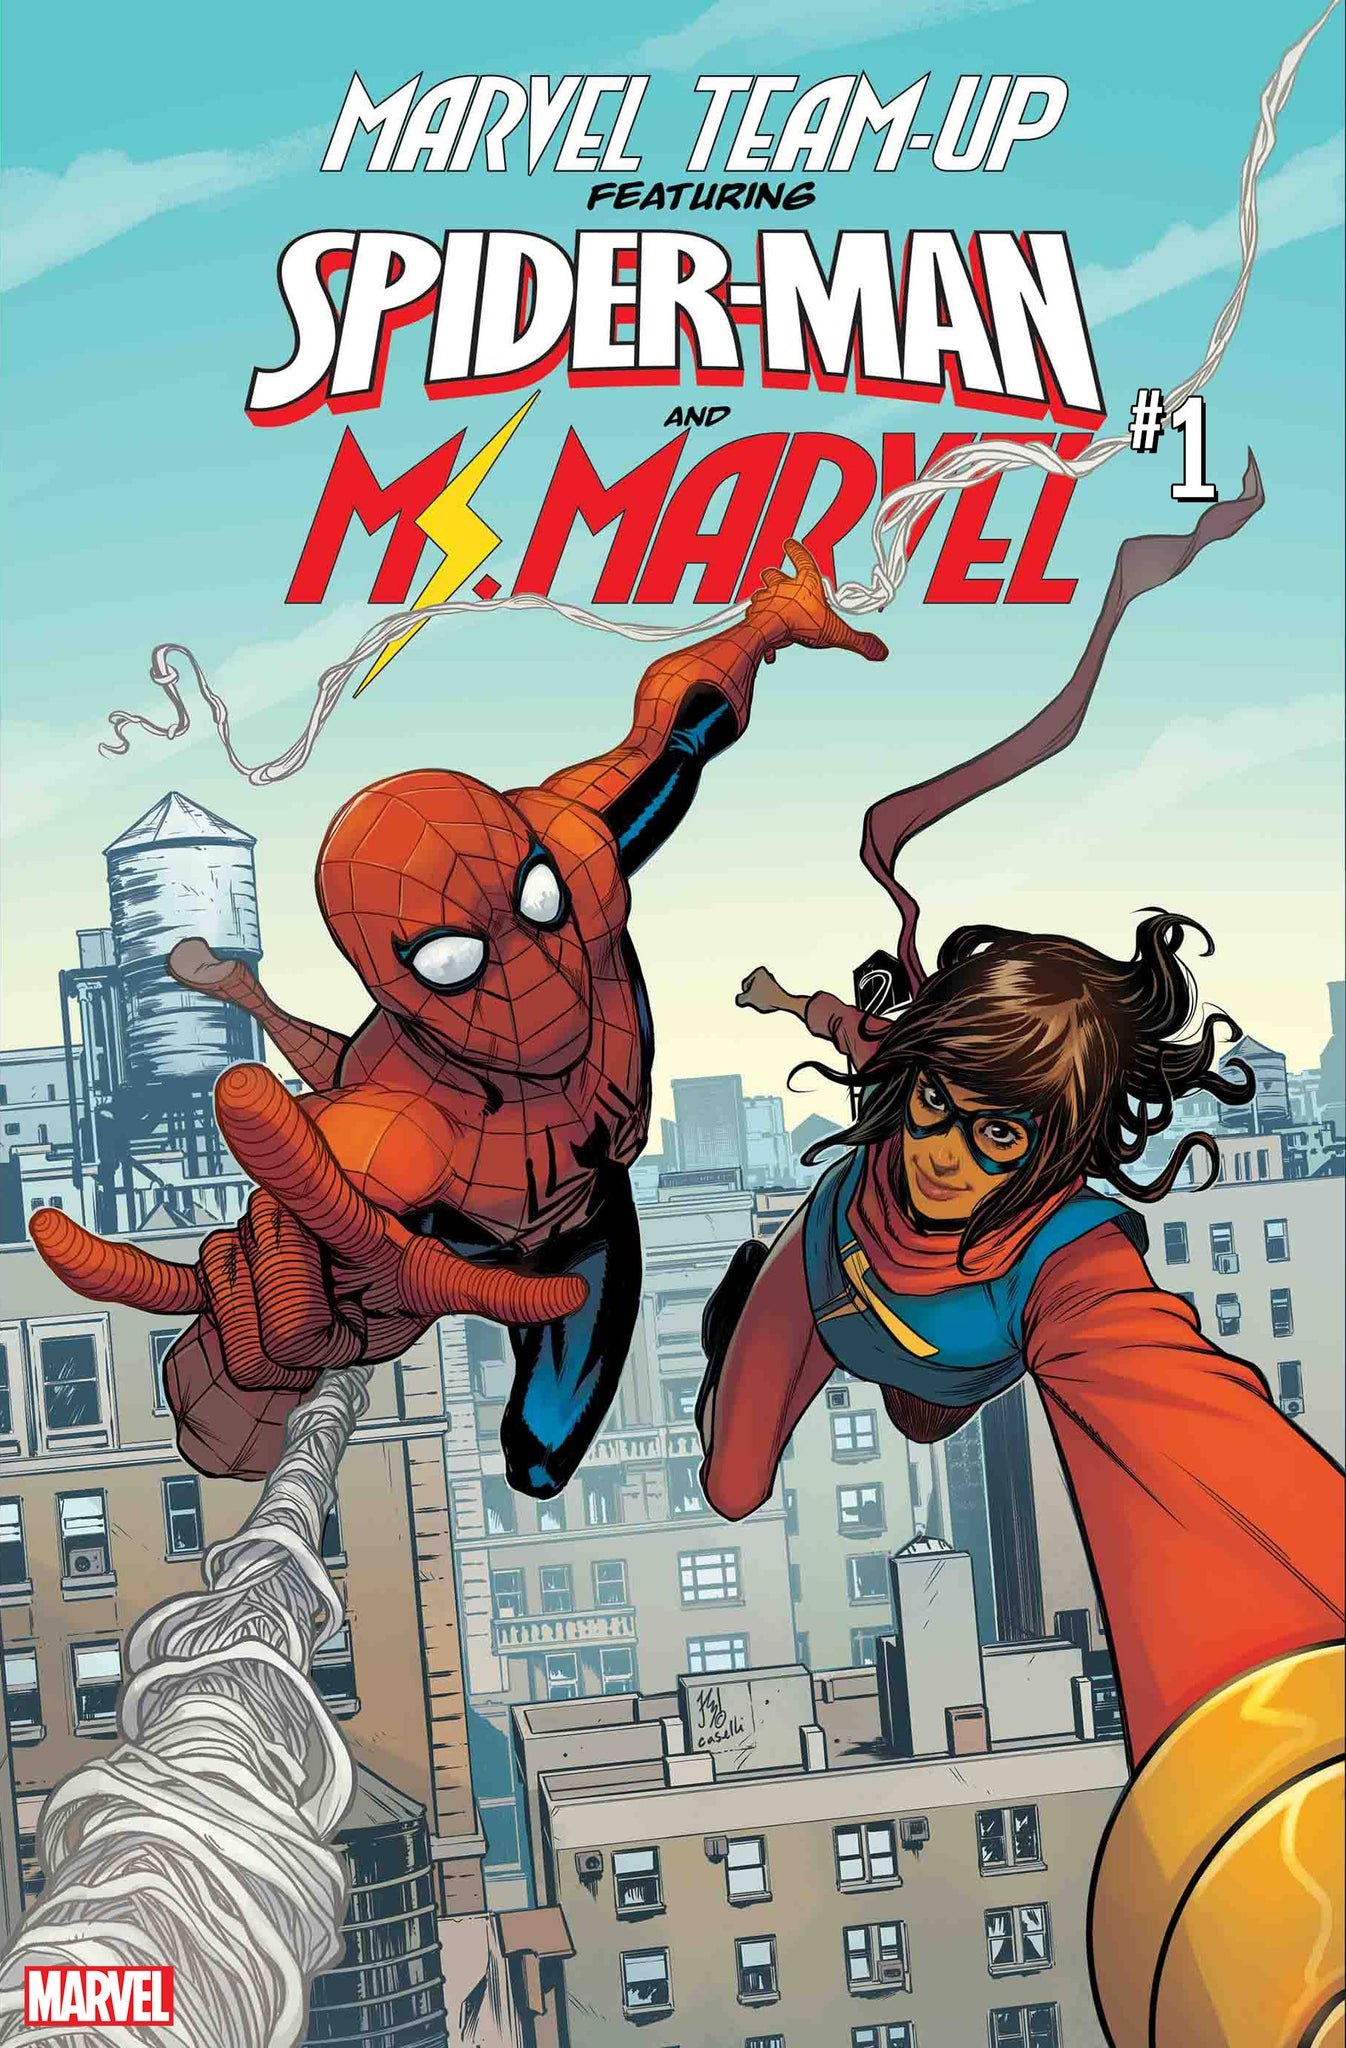 04/03/2019 MARVEL TEAM-UP #1